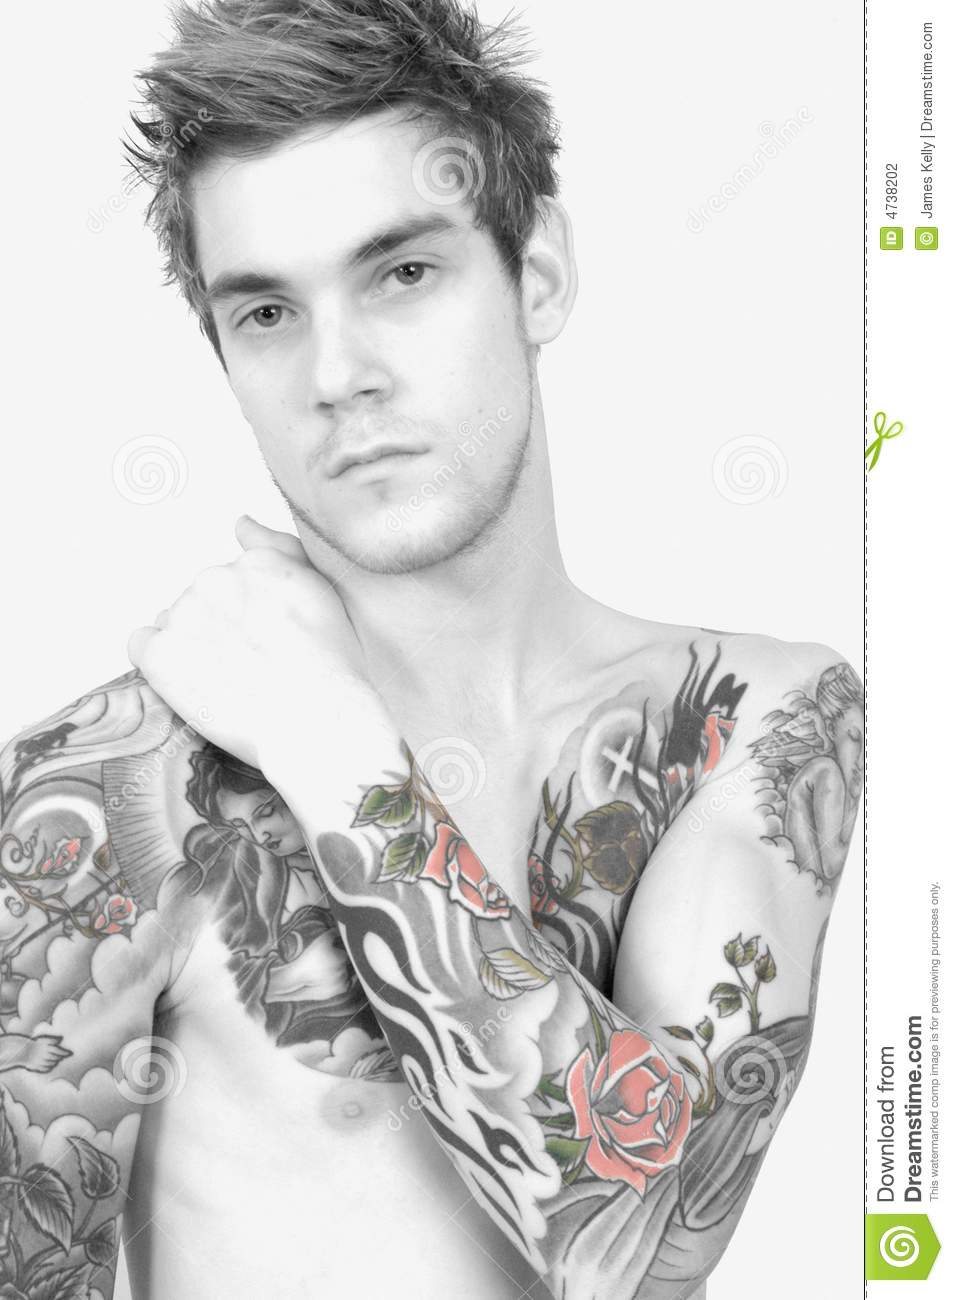 Homme grand de tatouage photo stock image du main lifestyle 4738202 - Tatouage rose main homme ...